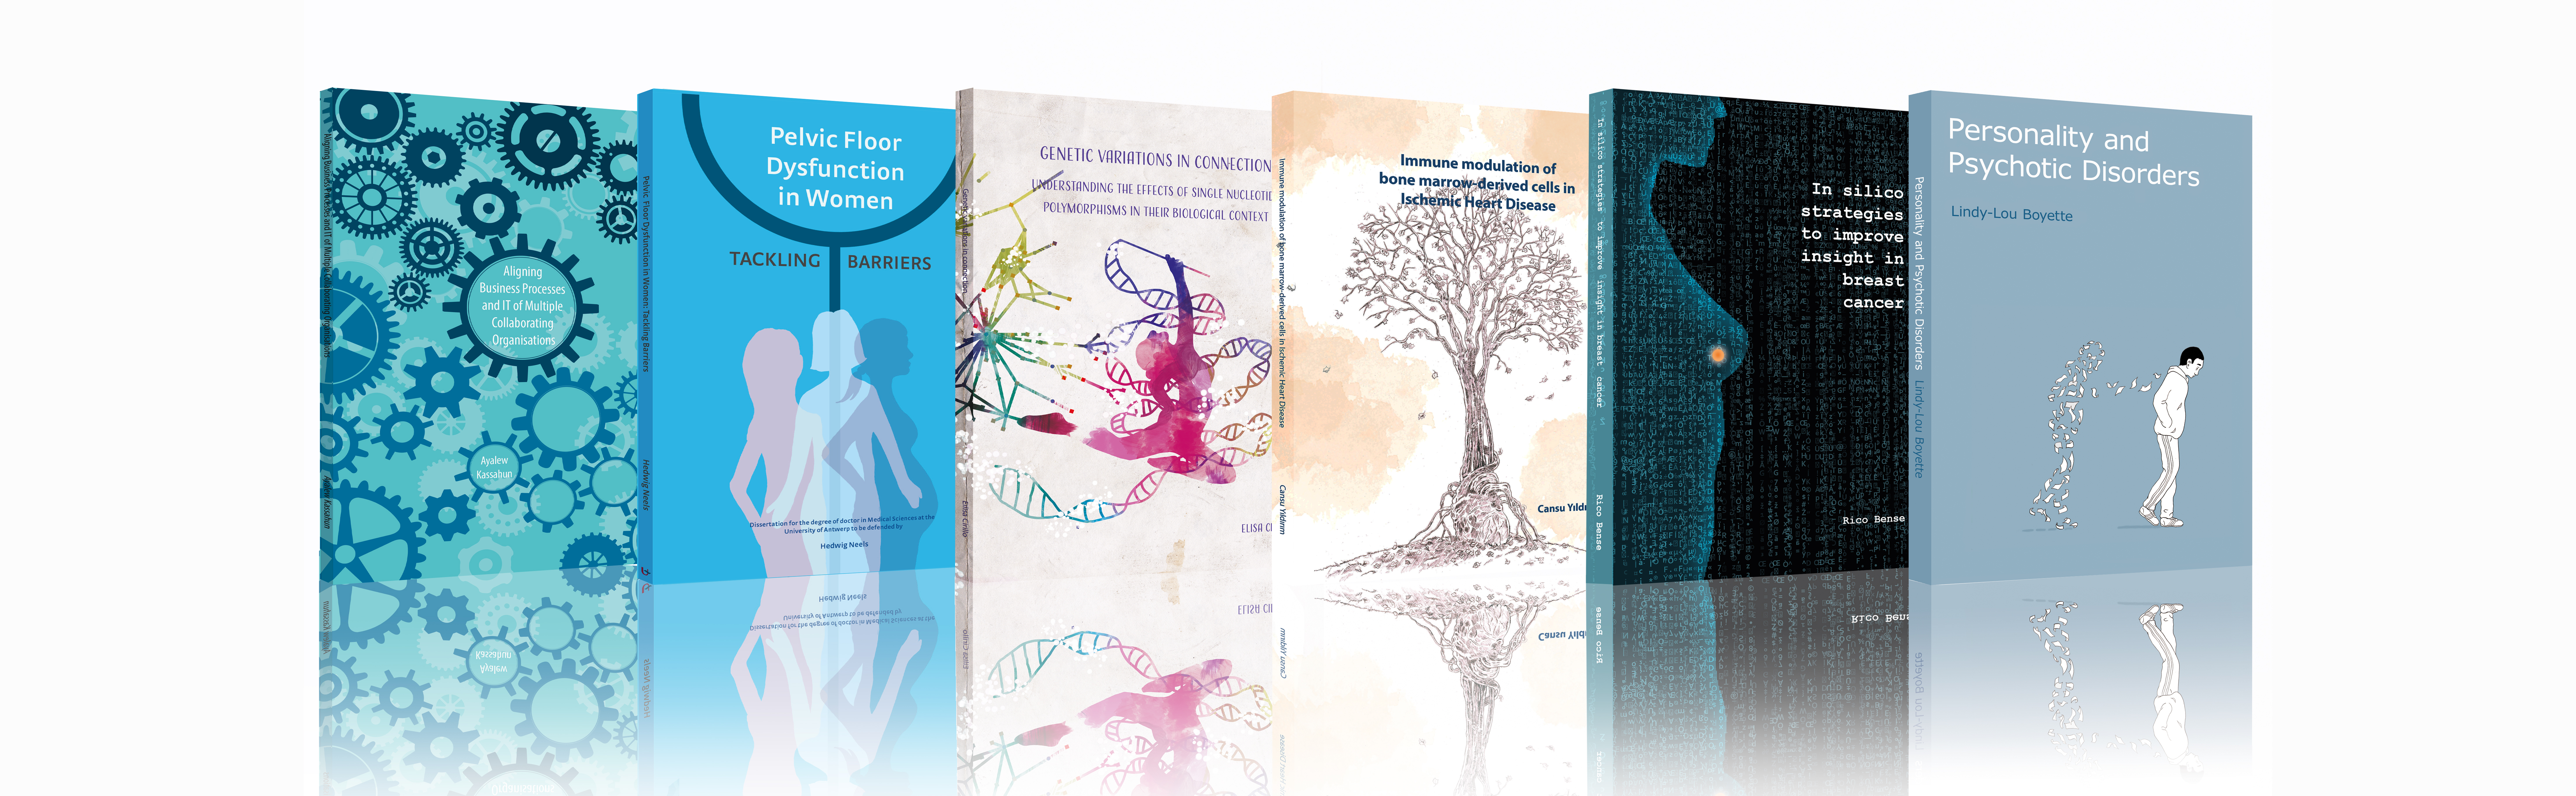 Thesis covers